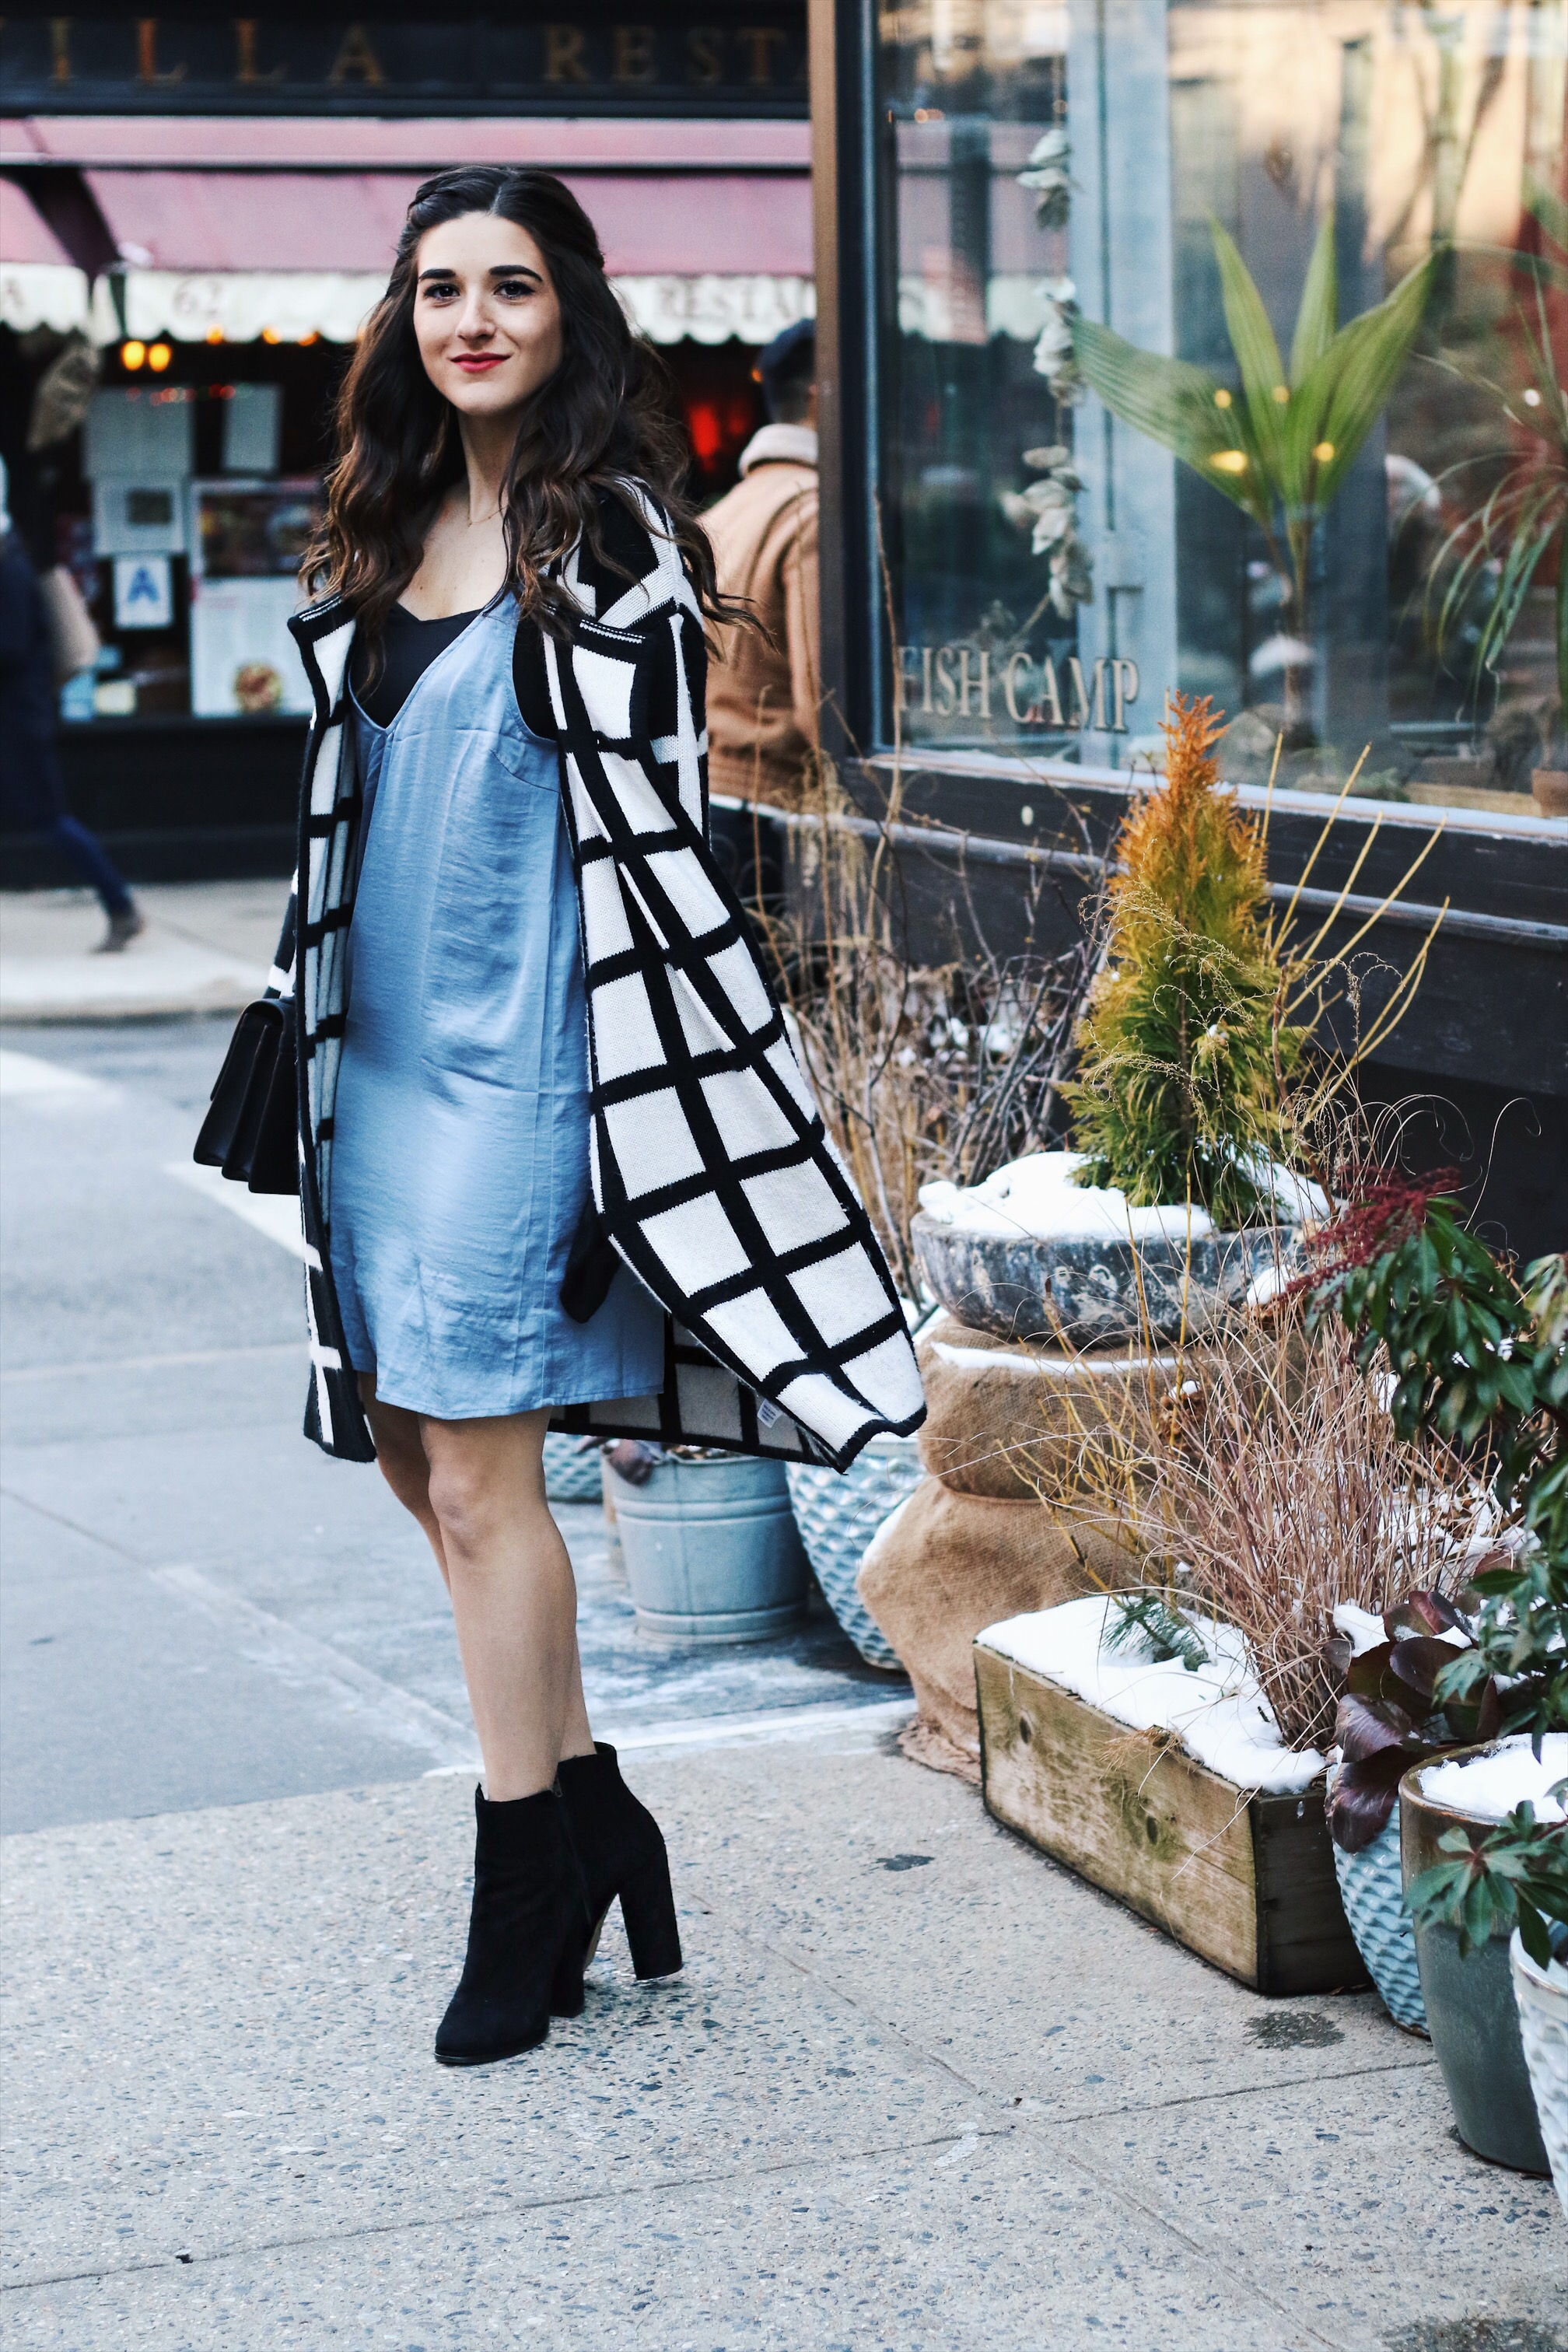 Slip Dress Oversized Cardigan The Job That Got Away Esther Santer Fashion Blog NYC Street Style Blogger Outfit OOTD Trendy Blue Black White Girl Women Bag Purse Henri Bendel Shop Buy Shoes Ankle Boots Inspo Photoshoot Winter Wearing Hair Layers Beauty.JPG